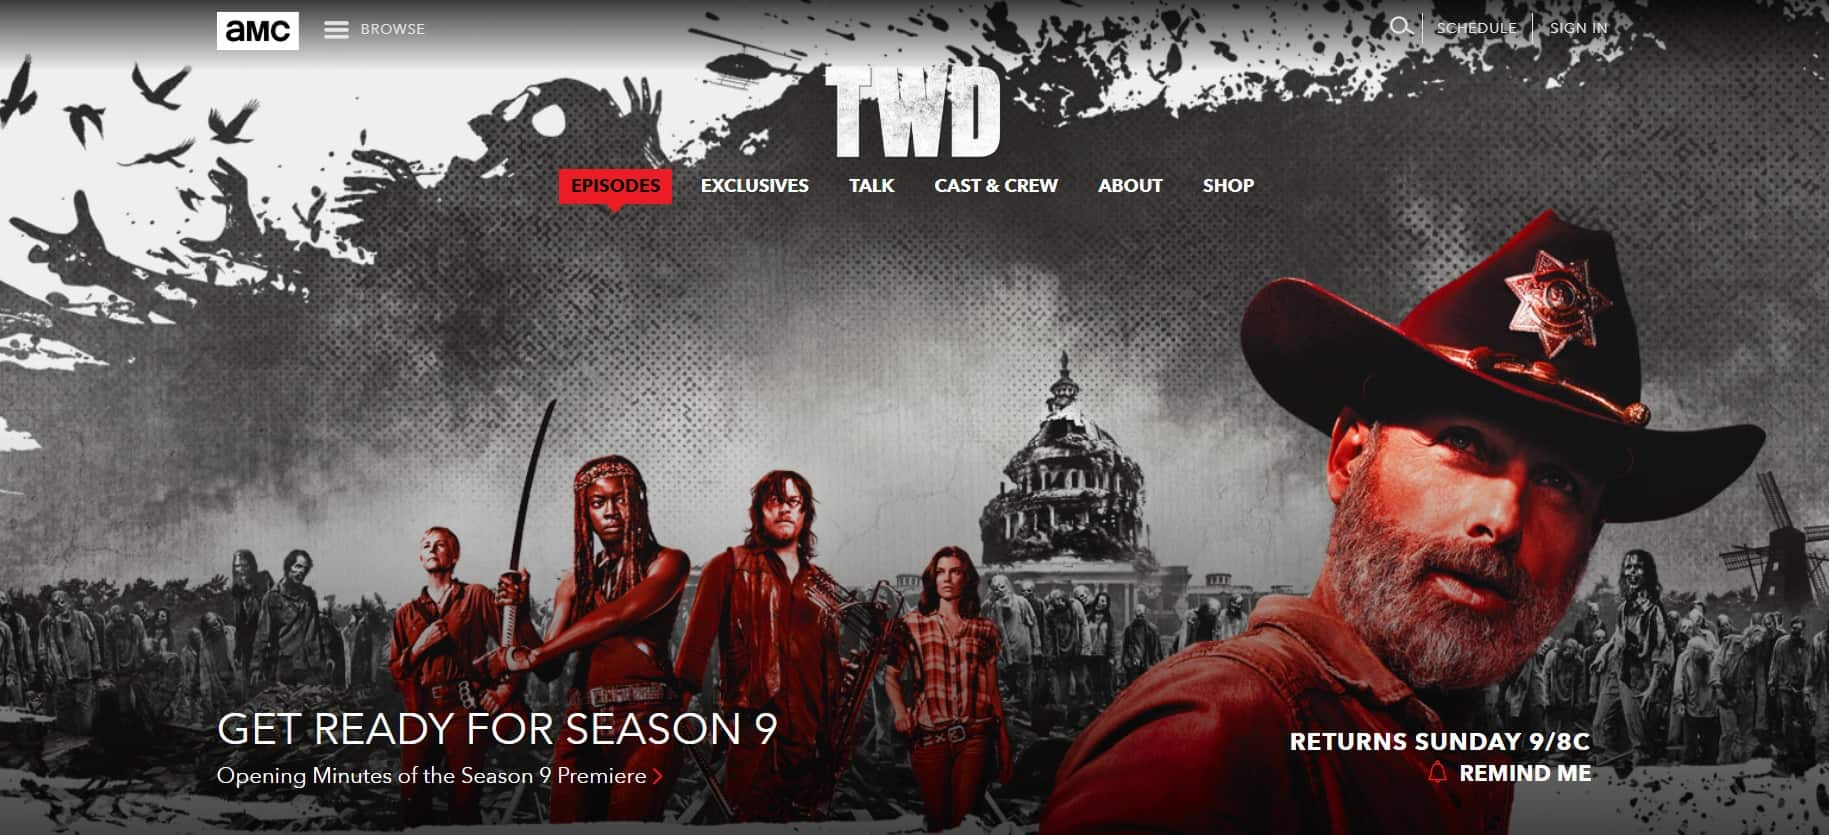 How to watch AMC The Walking Dead online